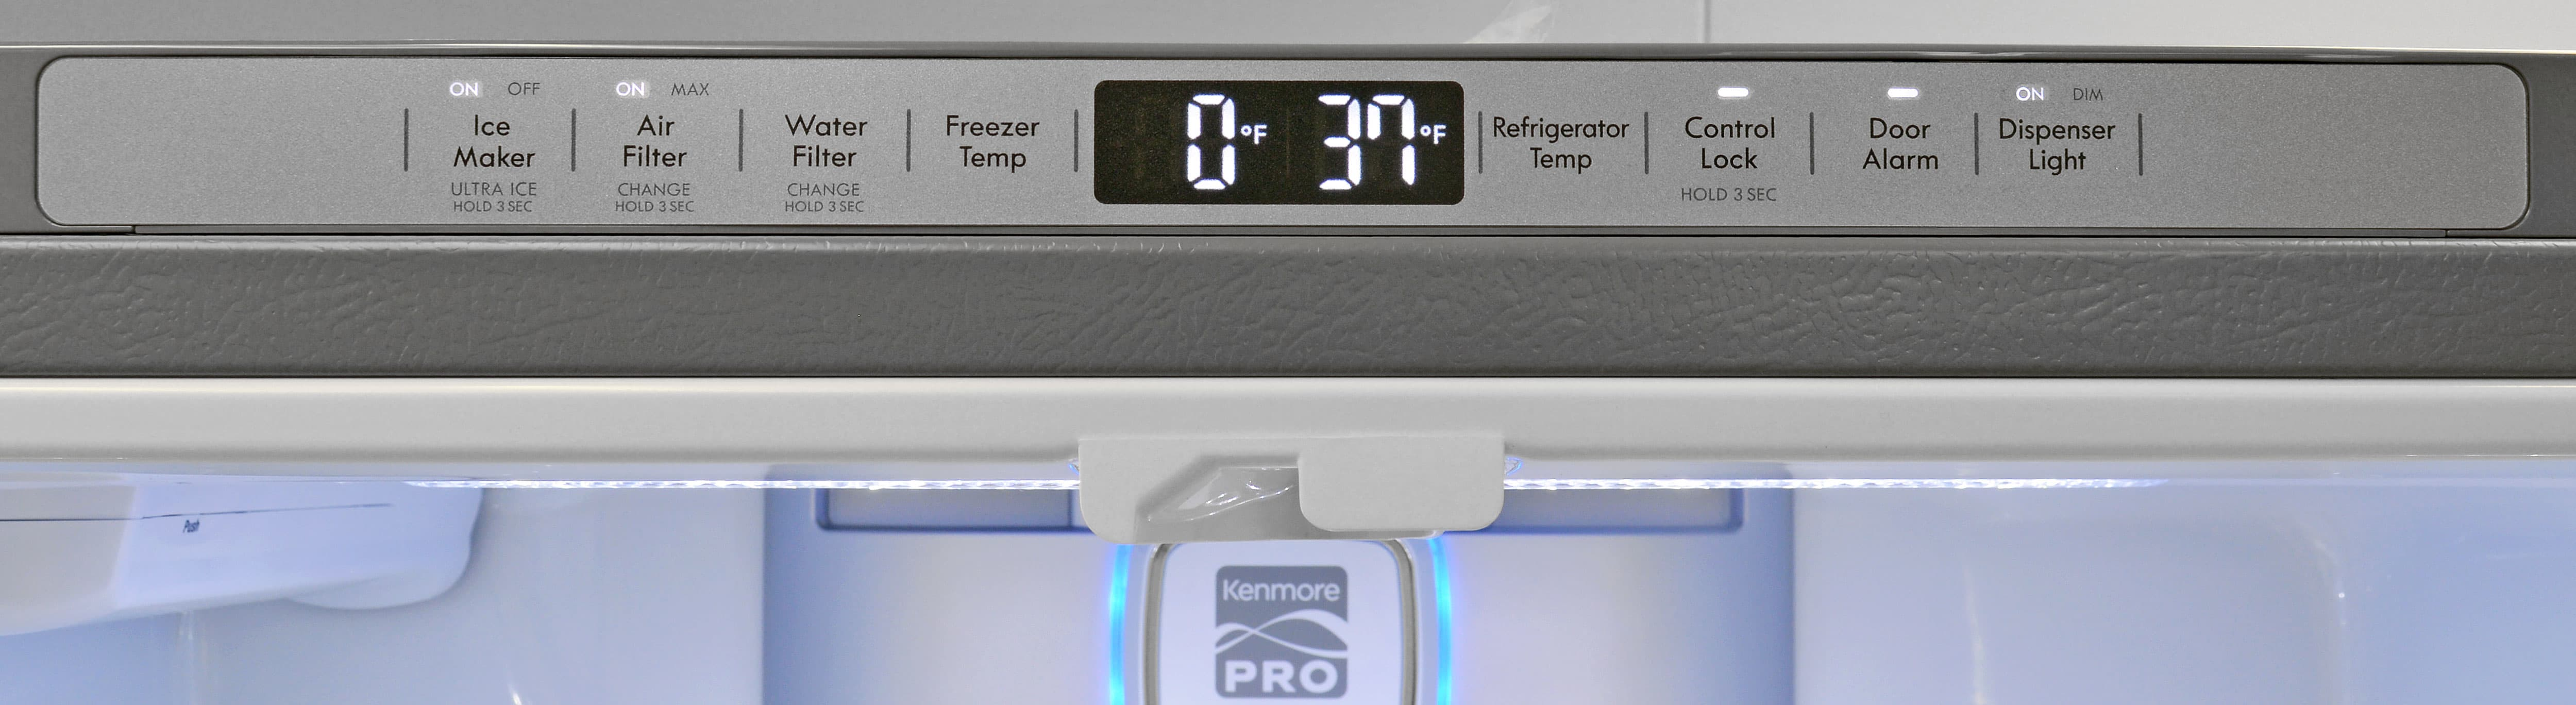 Almost all of the Kenmore Pro 79993's controls are found along the top edge of the door frame instead of on the front of the fridge.